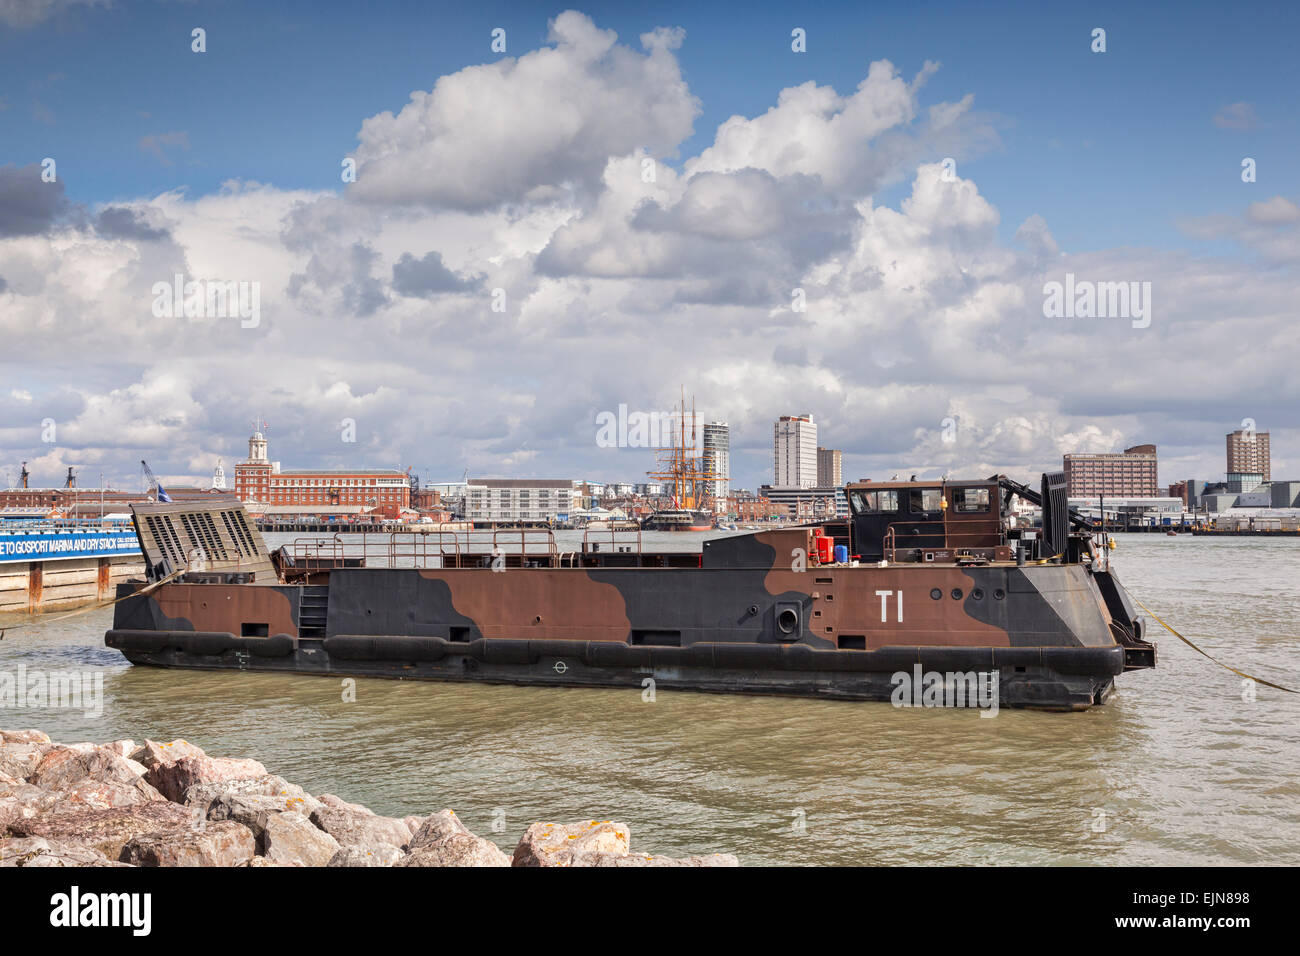 Landing craft at Gosport, Portsmouth Harbour, Hampshire, England. - Stock Image